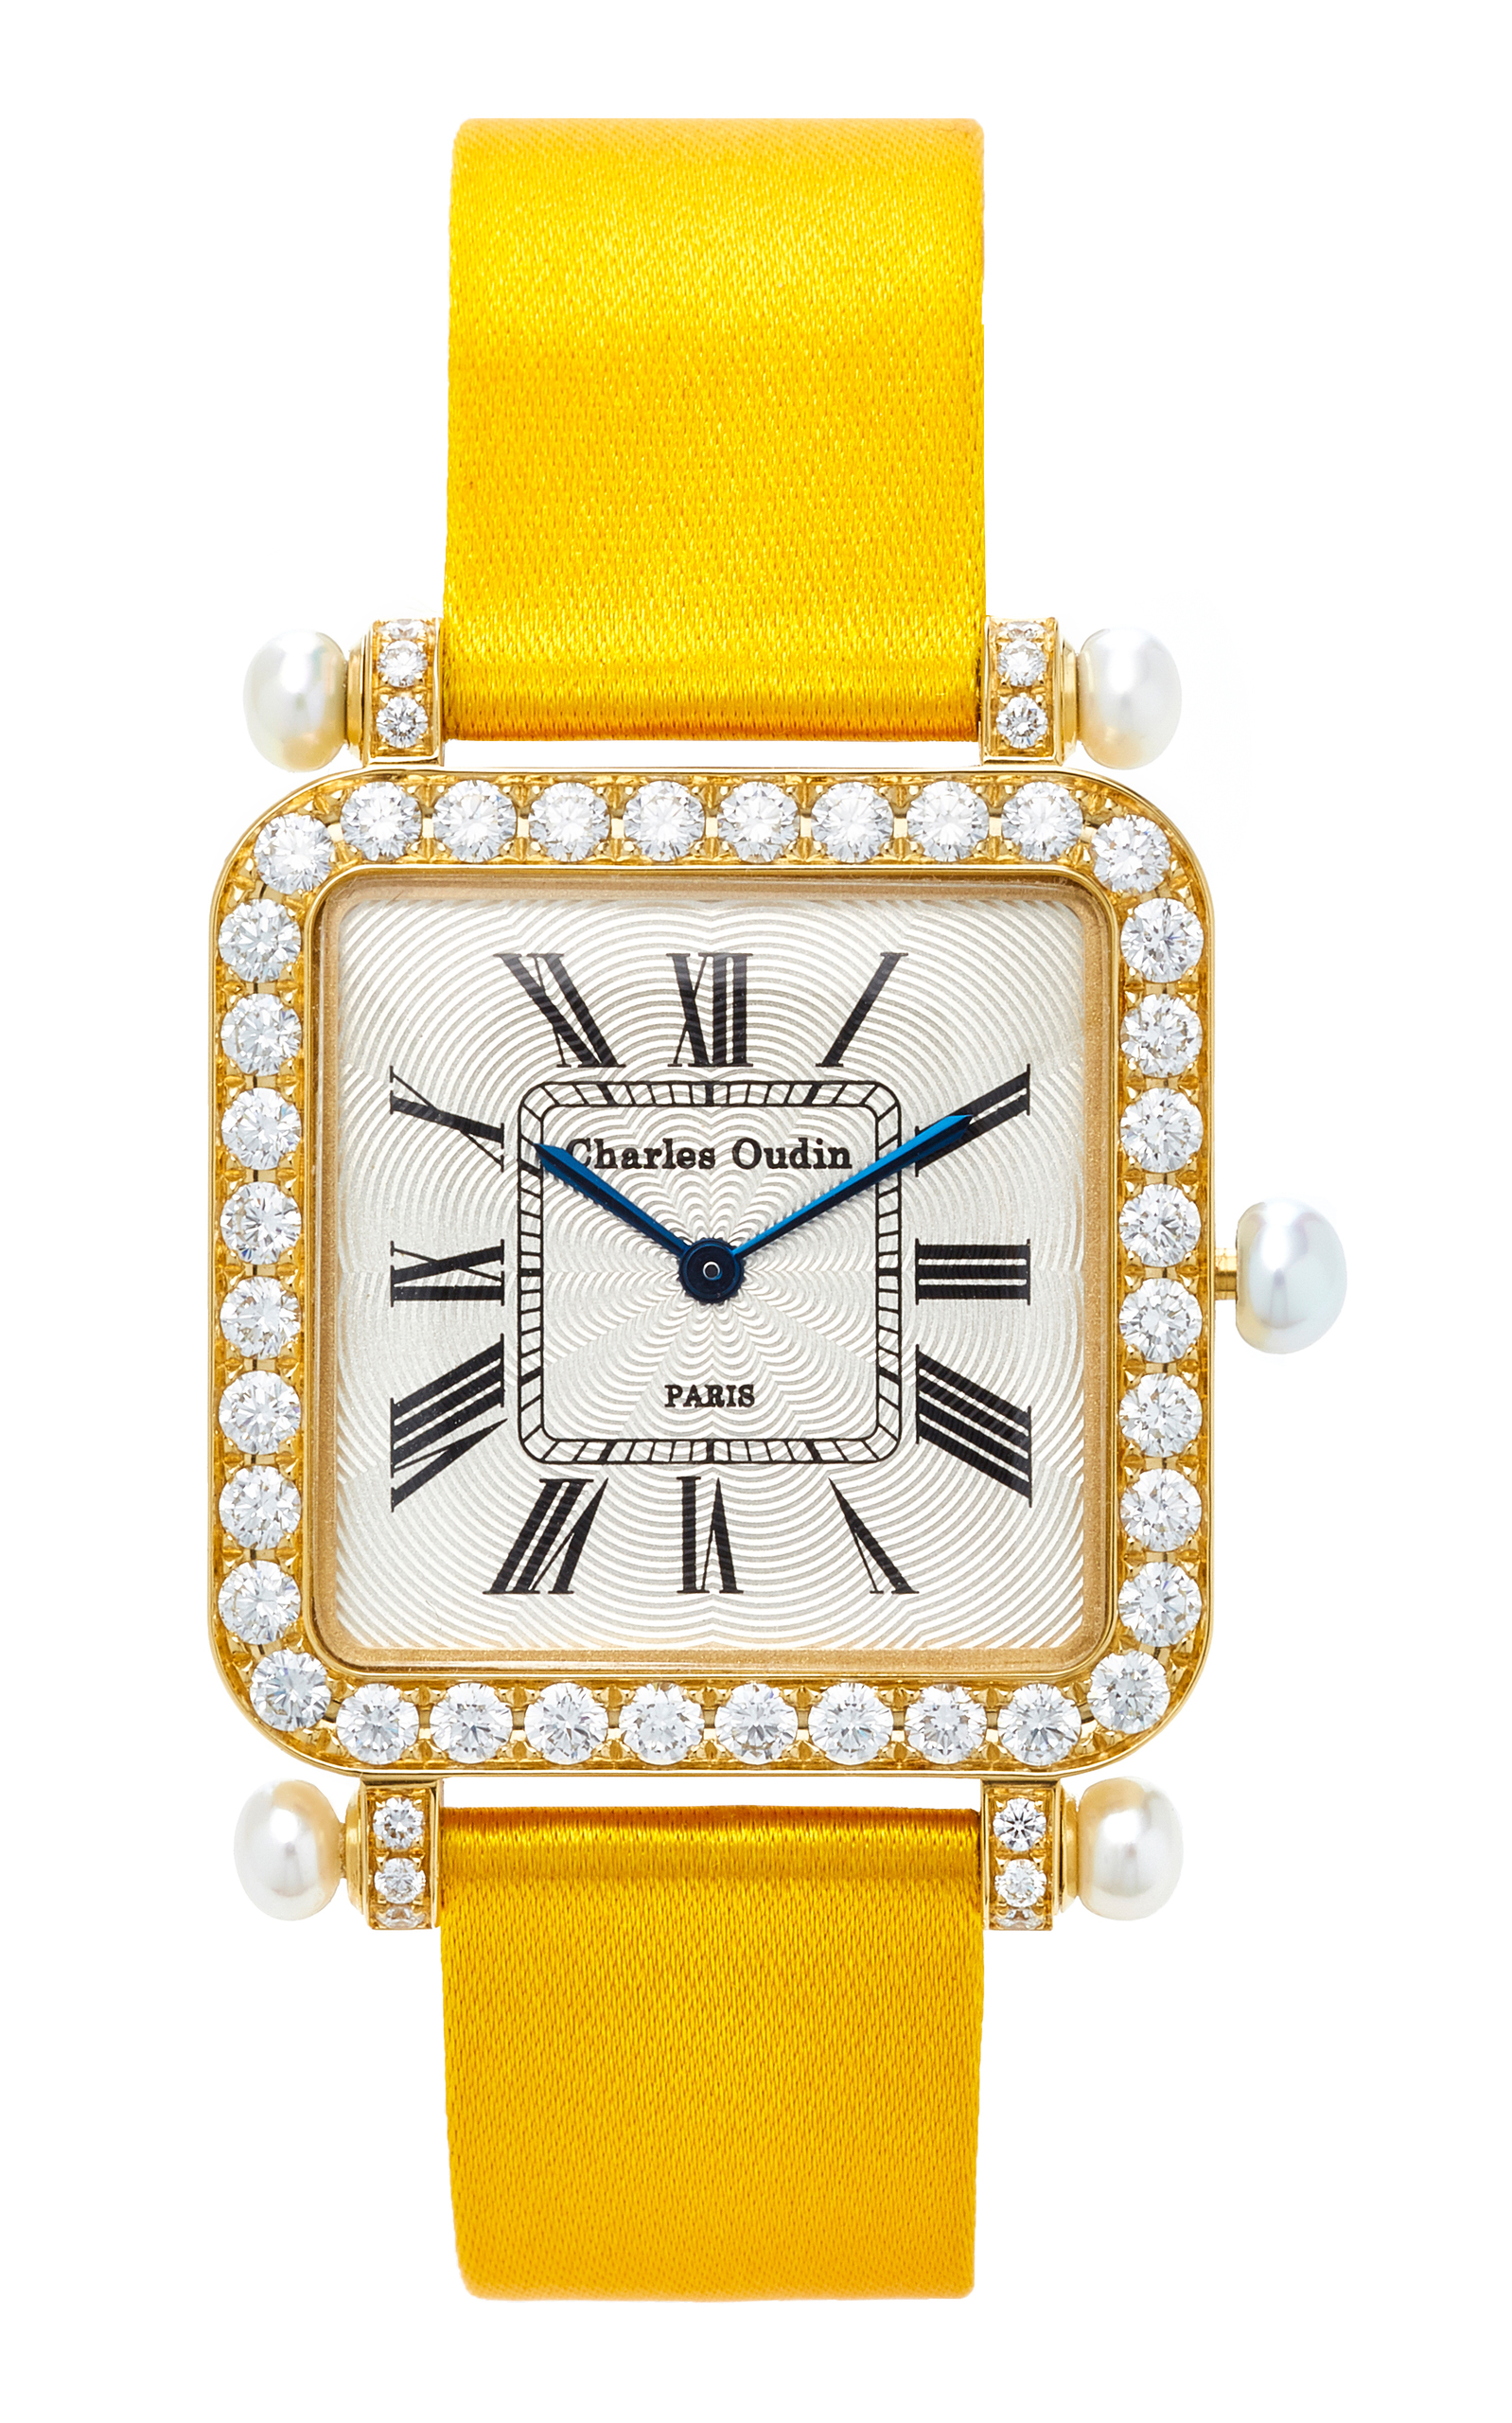 CHARLES OUDIN 18K Yellow Gold Diamond And Pearl Large Pansy Retro Watch